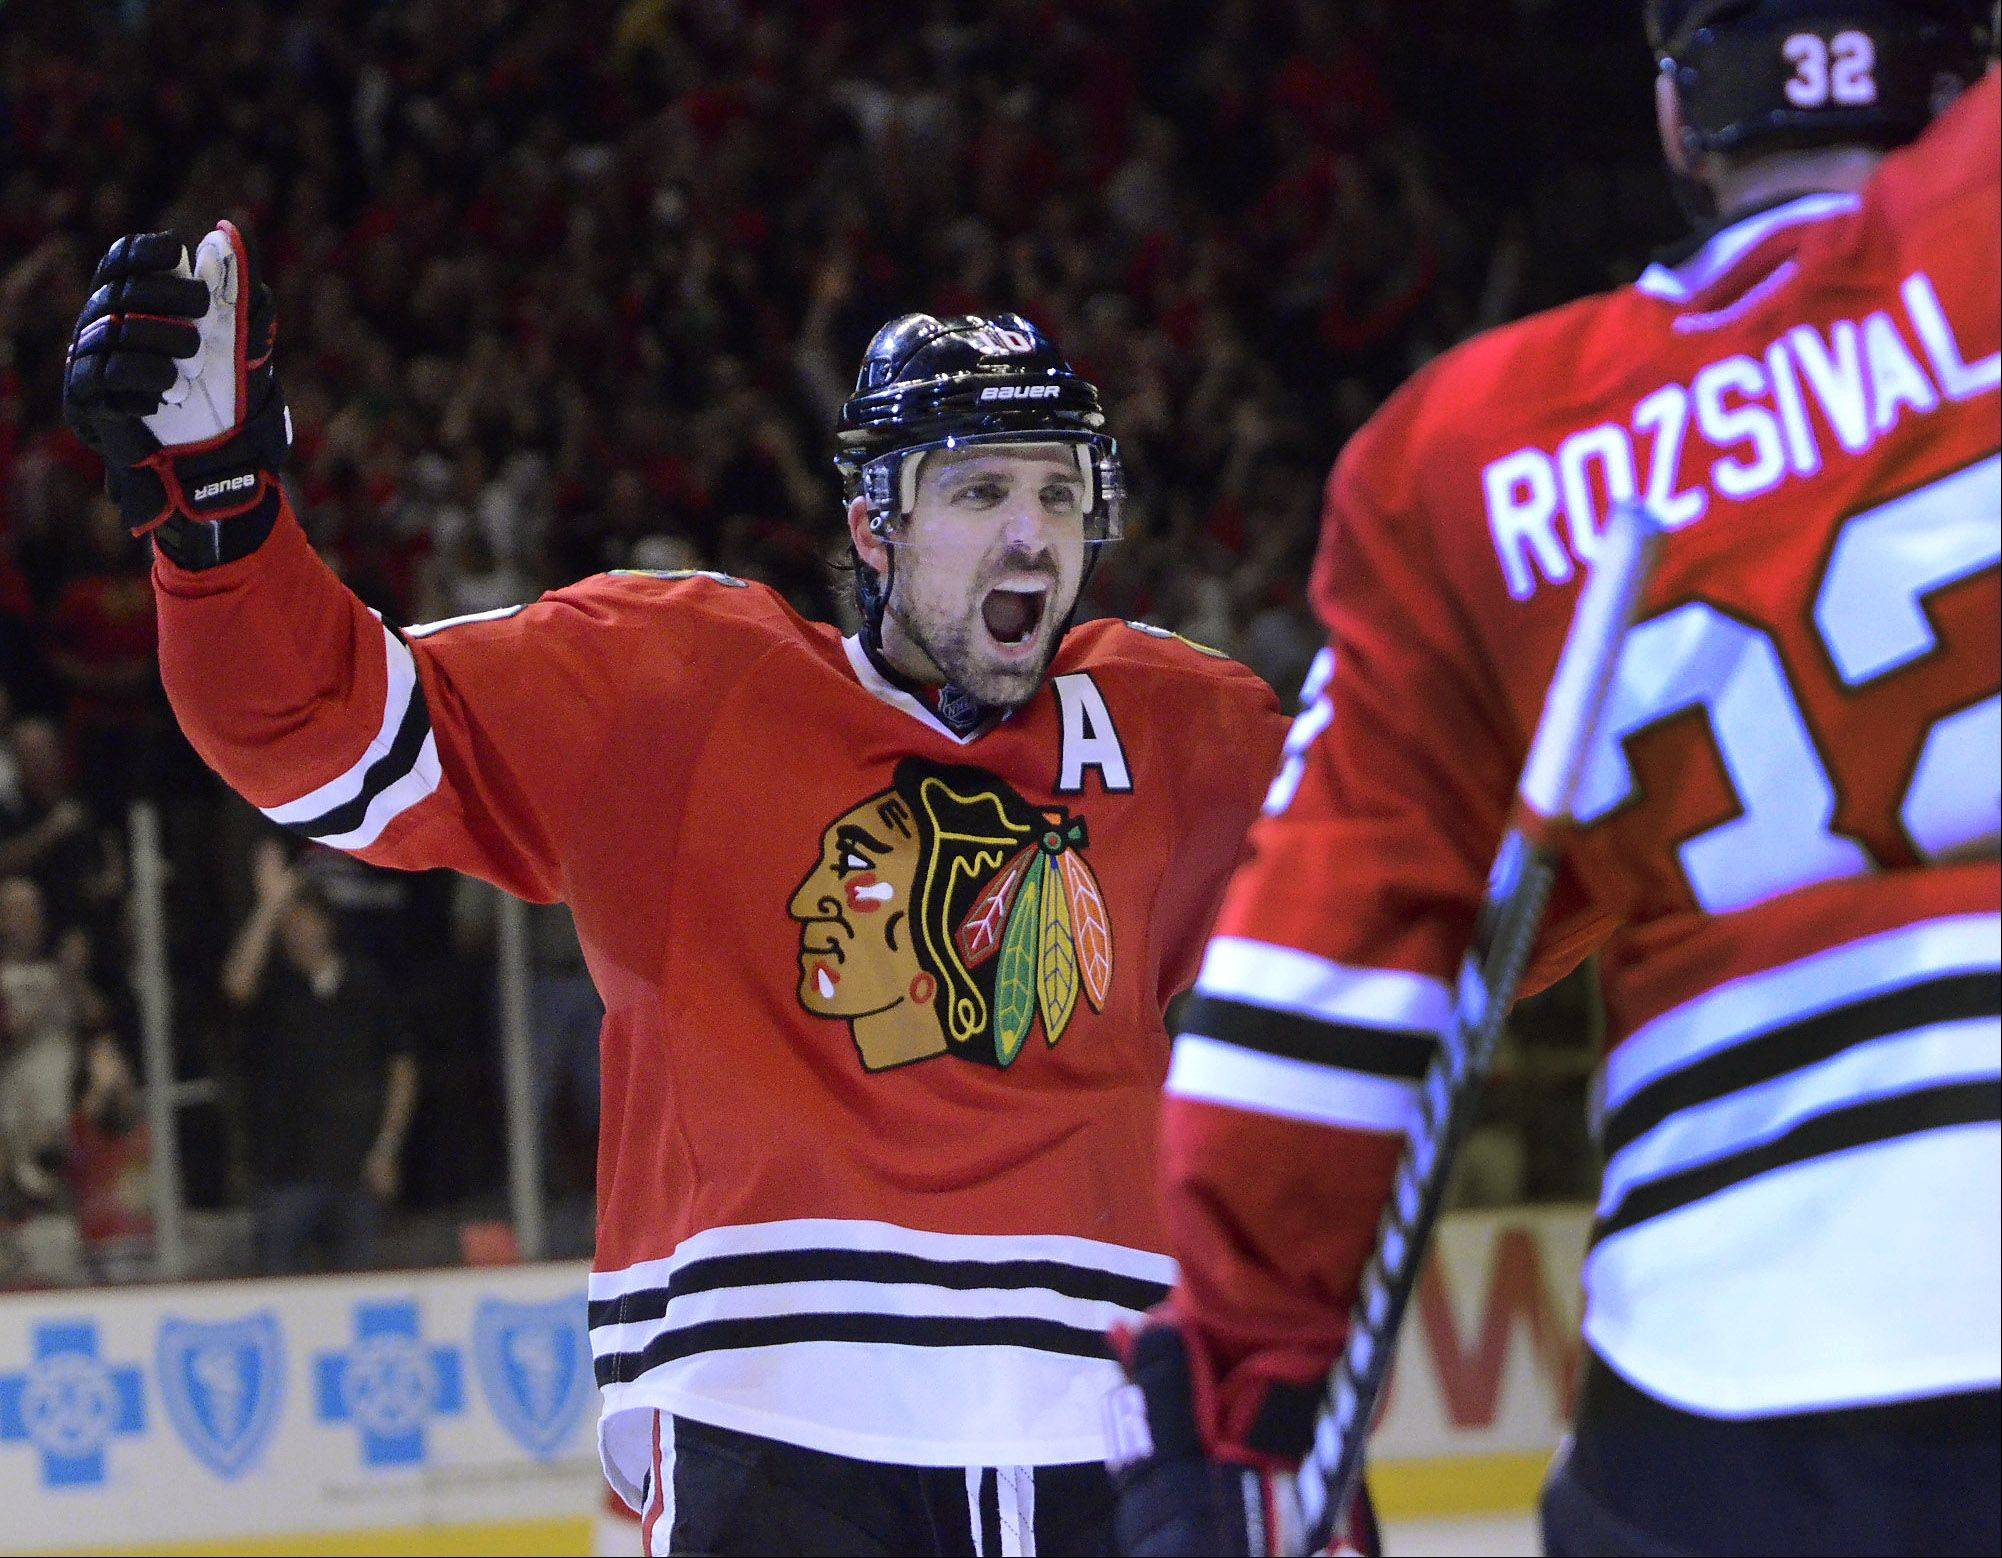 Patrick Sharp's play key to Blackhawks' Game 1 win